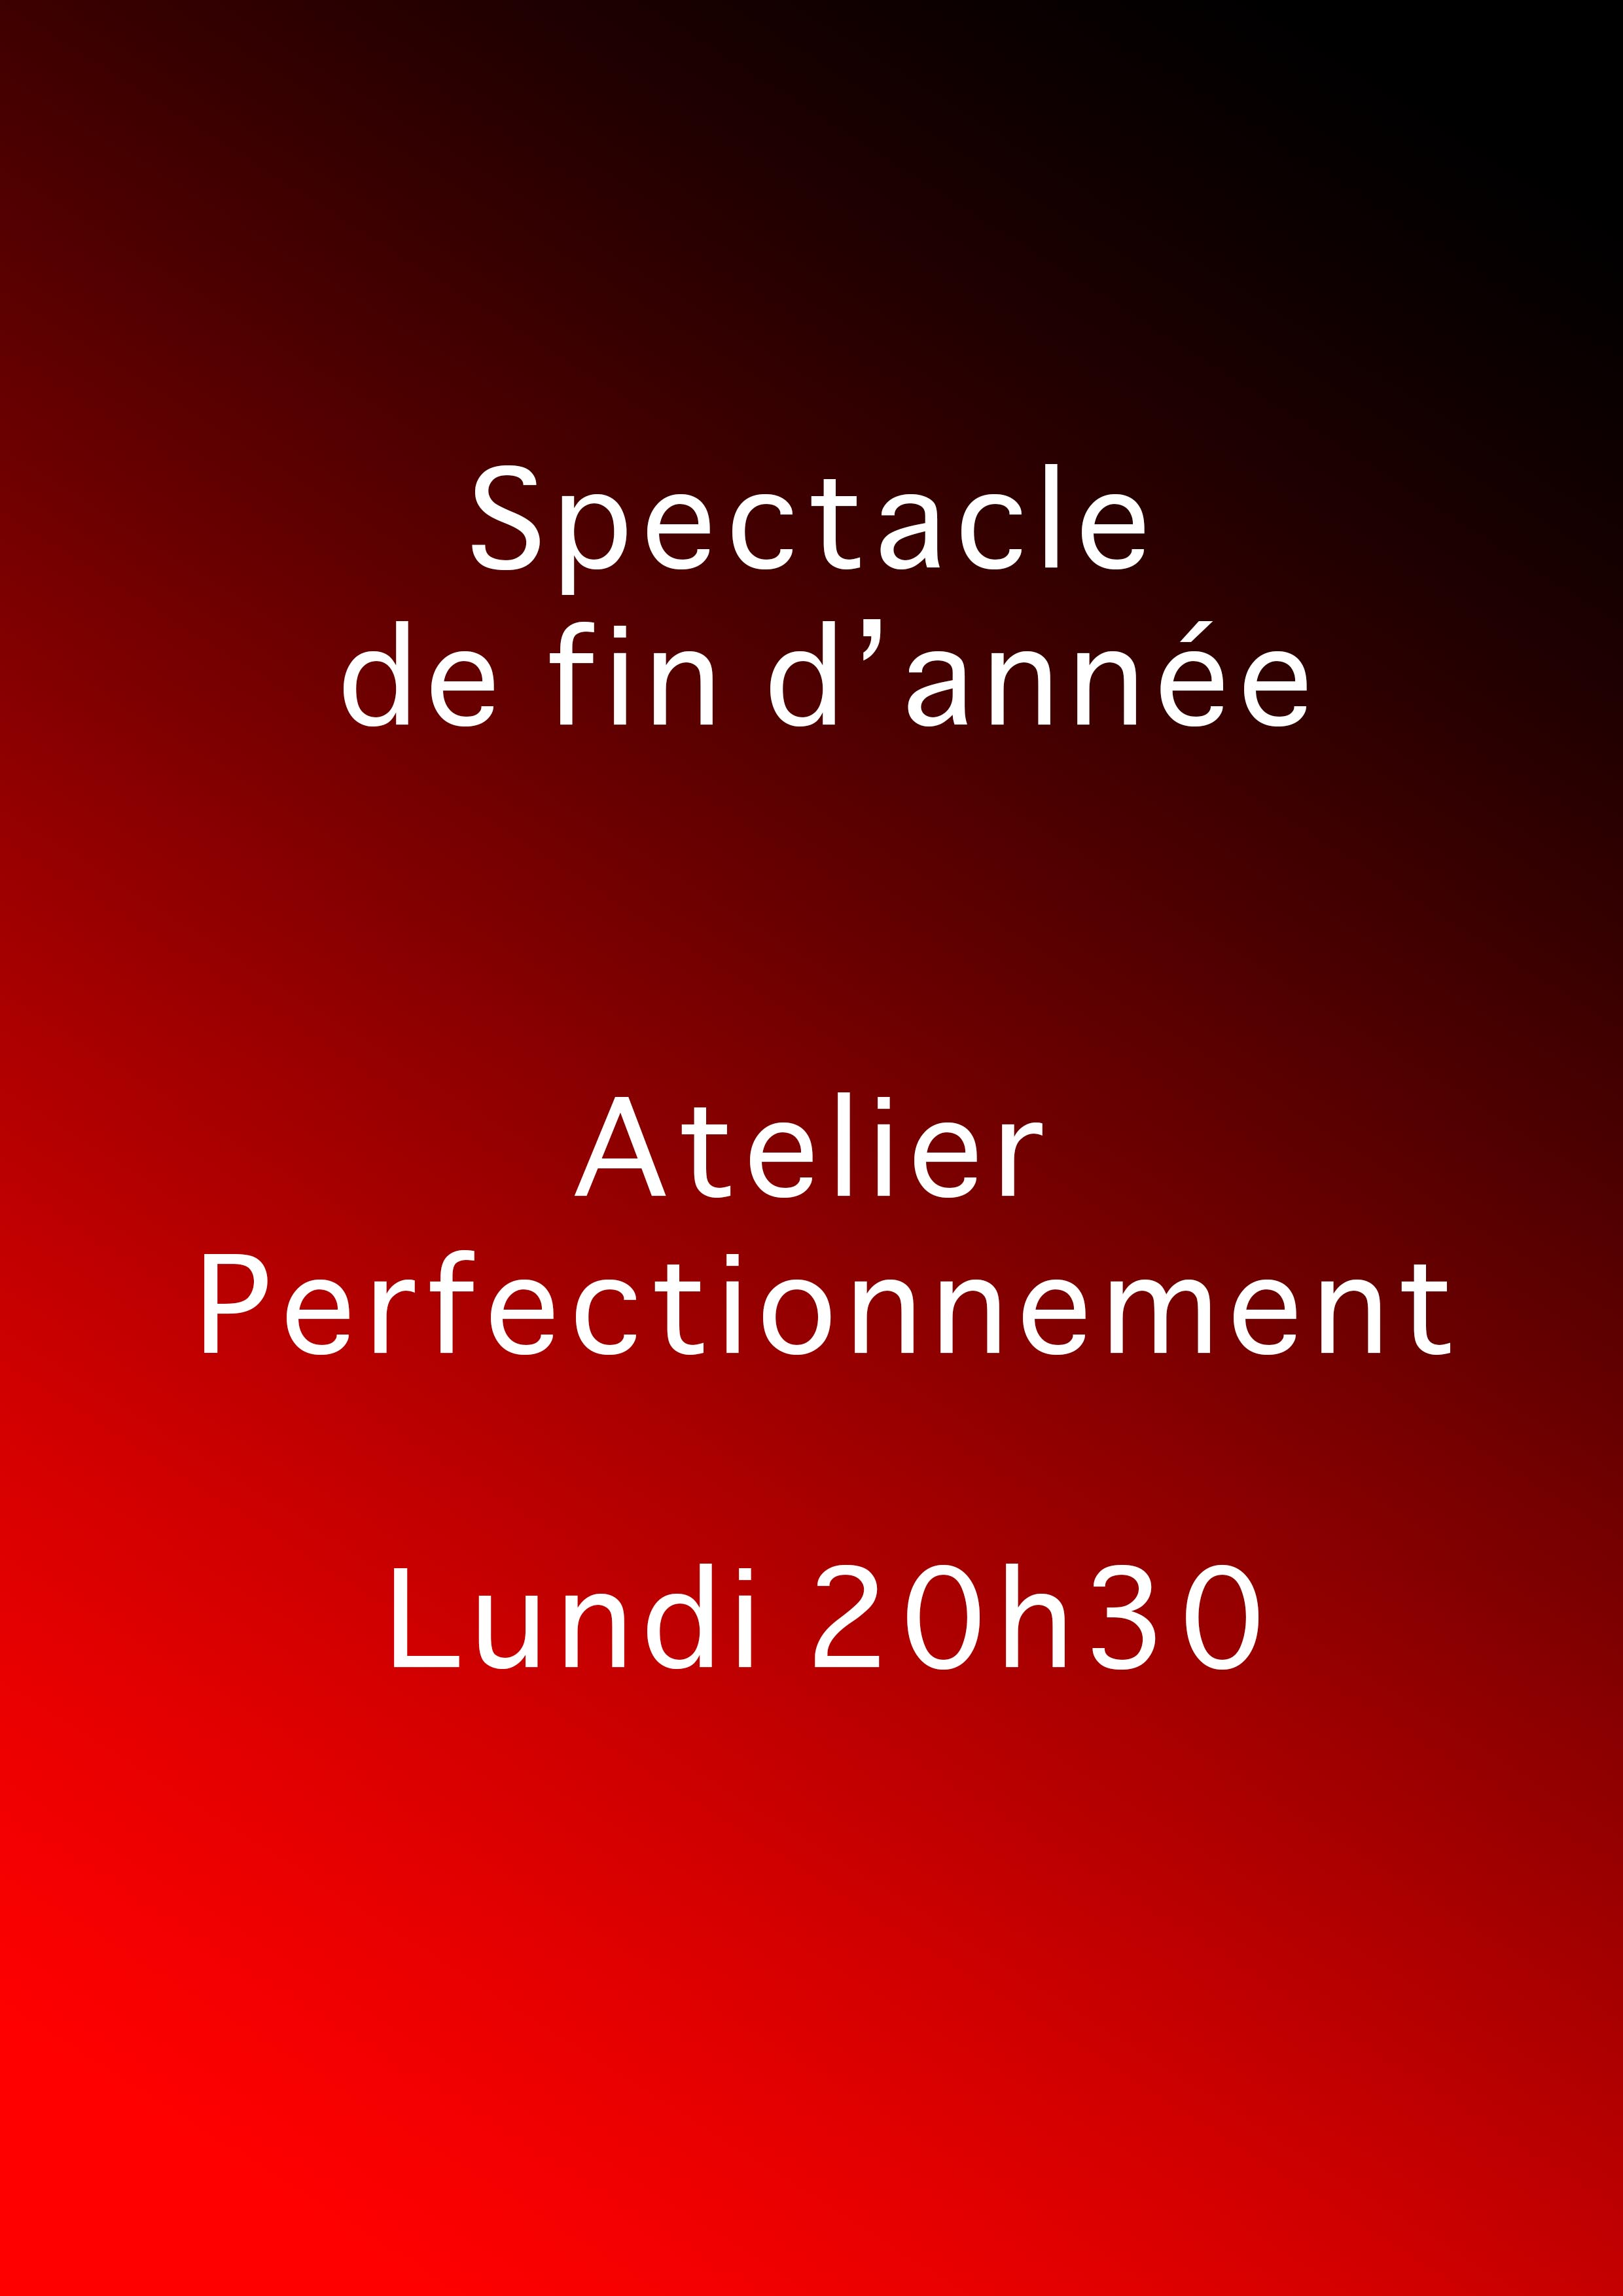 Perfectionnement Lundi